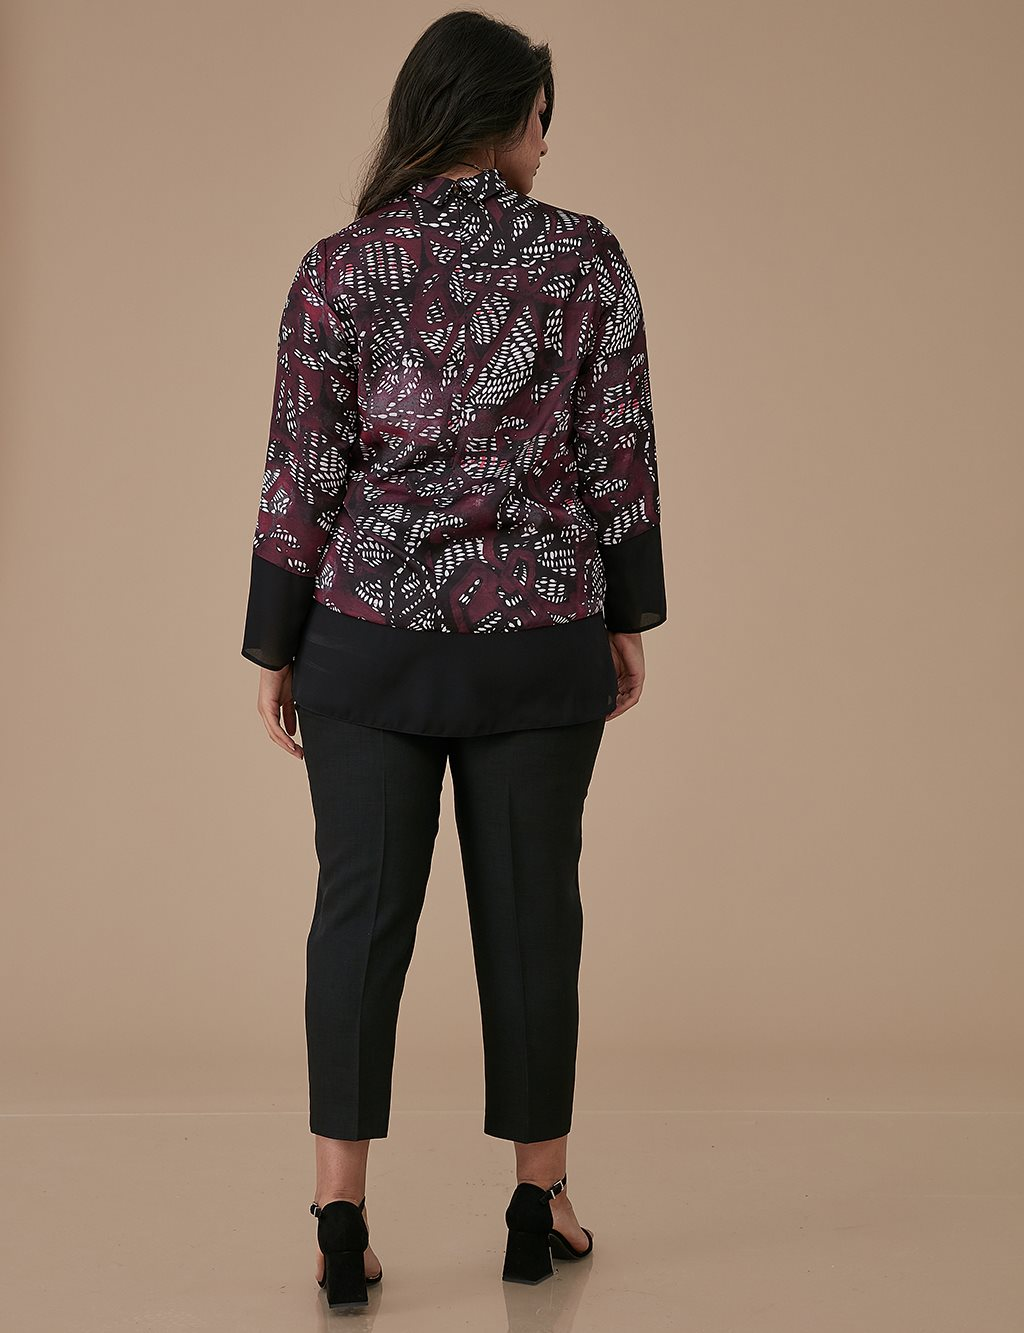 Patterned Blouse A9 10053 Burgundy